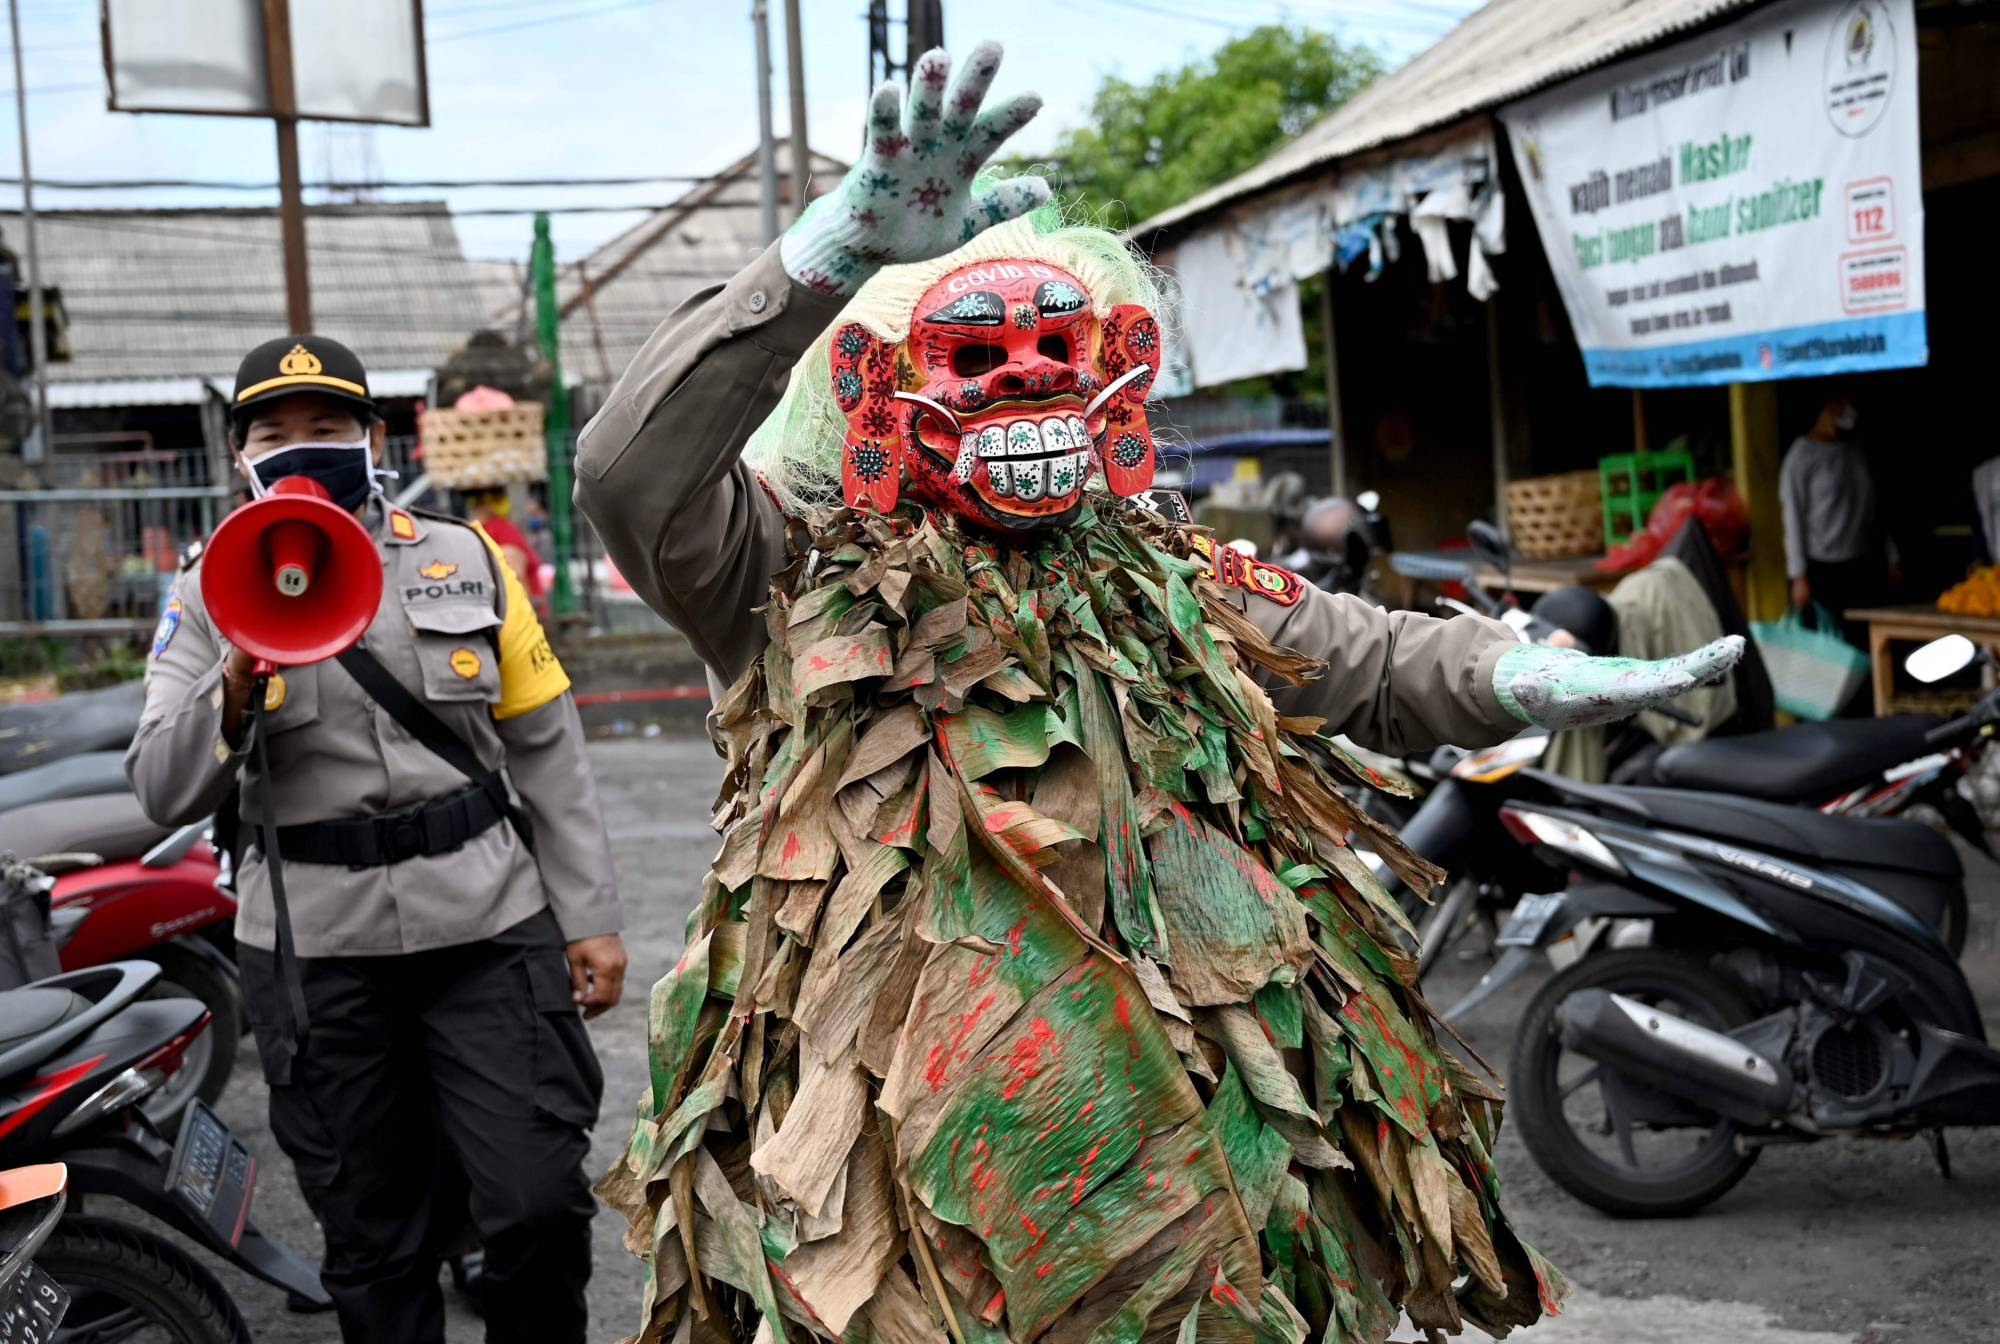 A Bali police officer wears a scary mask called 'Leak' while trying to educate people on COVID-19 at a traditional market in Kerobokan on Thursday. The island's success in curbing the virus has come with the help of about 1,500 traditional village committees with considerable sway over the majority Hindu residents, according to Gov. Wayan Koster. | AFP-JIJI